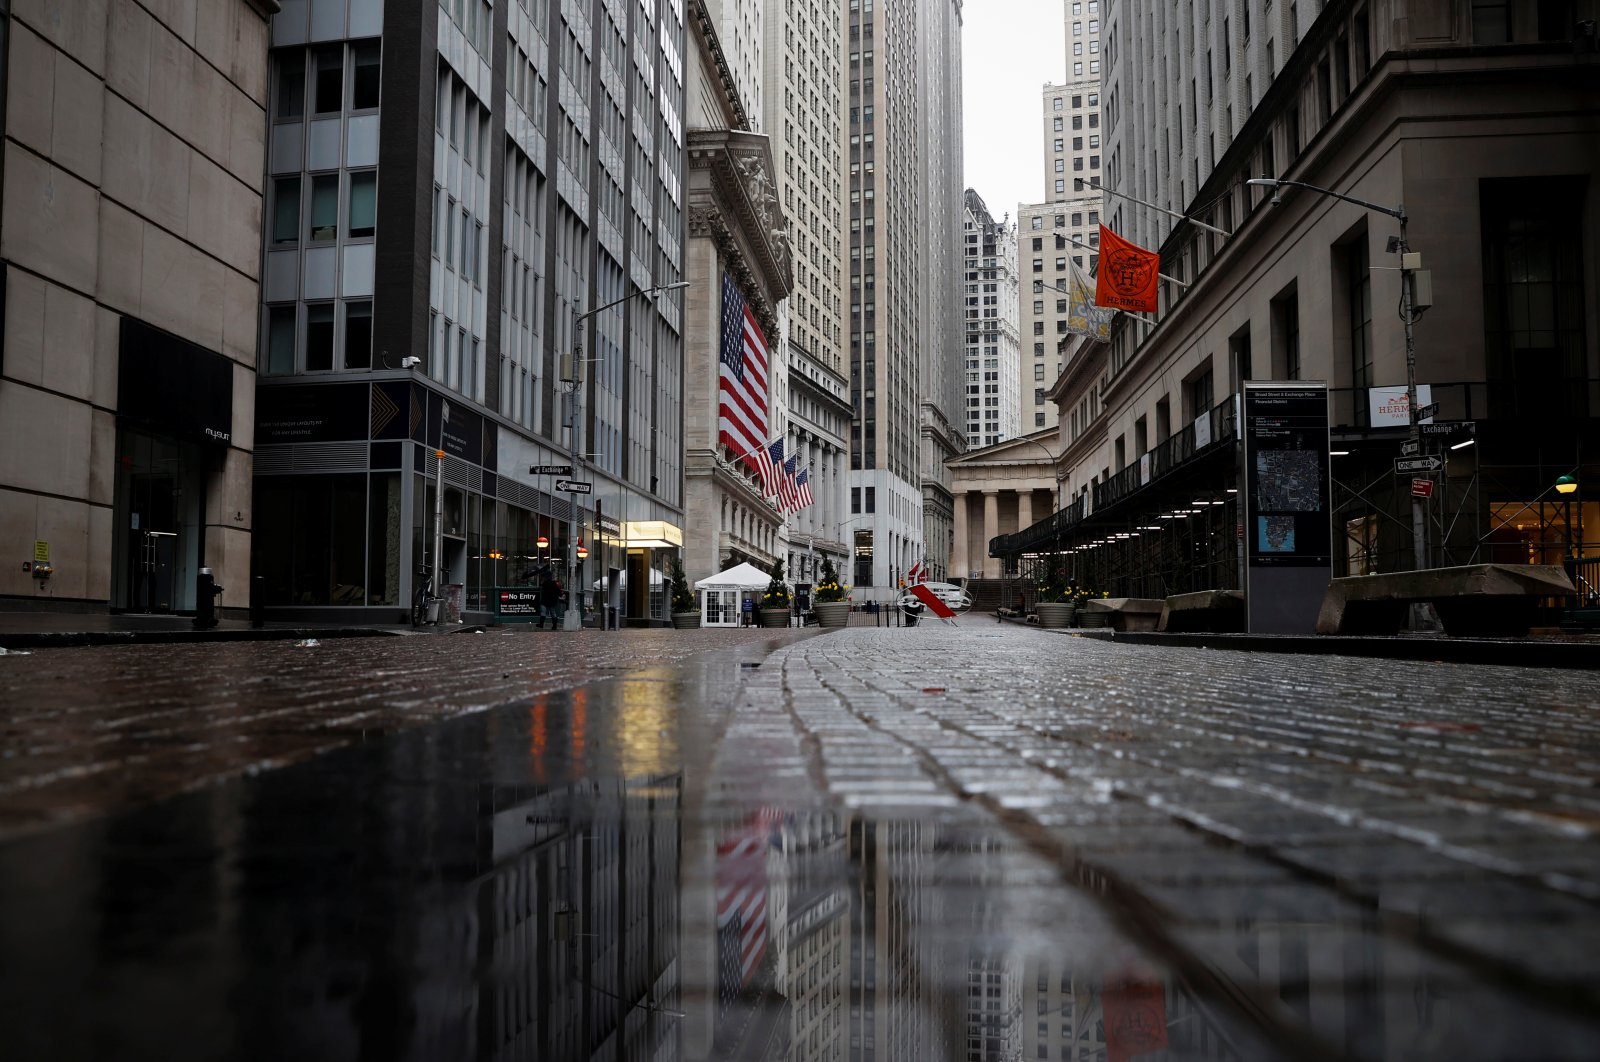 A view of a nearly deserted Broad street and the New York Stock Exchange building in the financial district of lower Manhattan during the COVID-19 outbreak, New York City, April 3, 2020. (Reuters Photo)